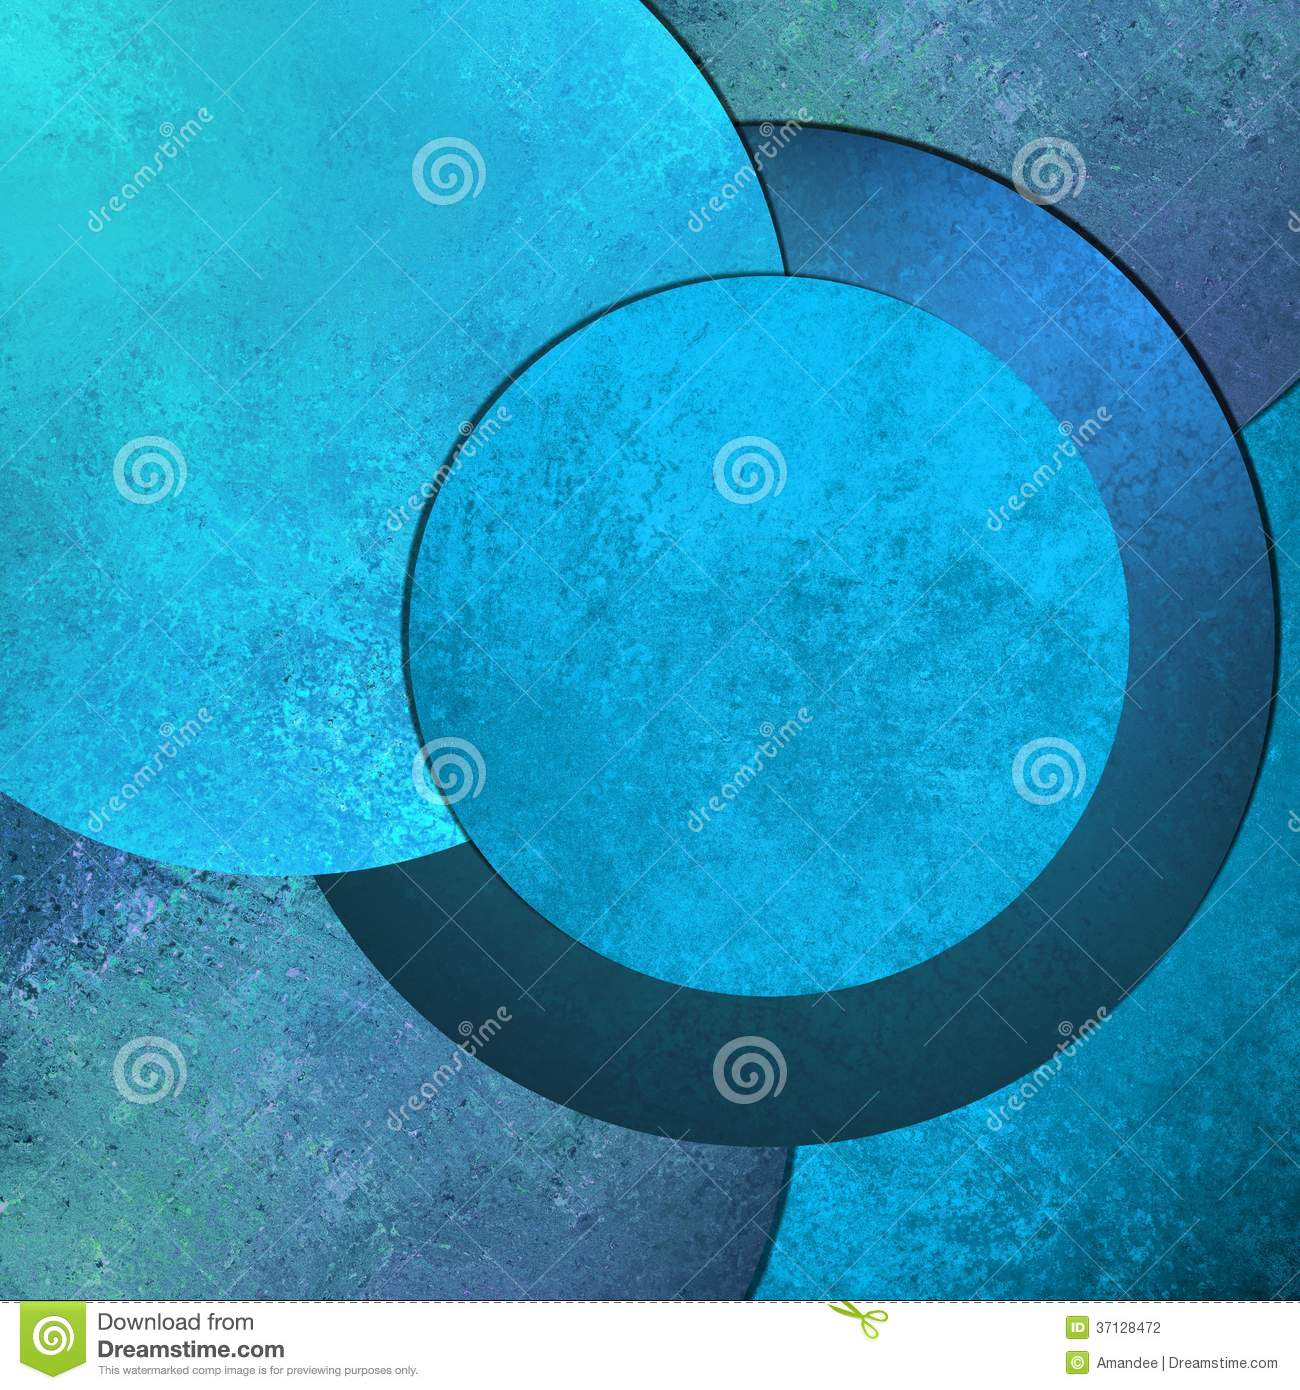 Bright Sky Blue Abstract Background Image With Cool Round Circle